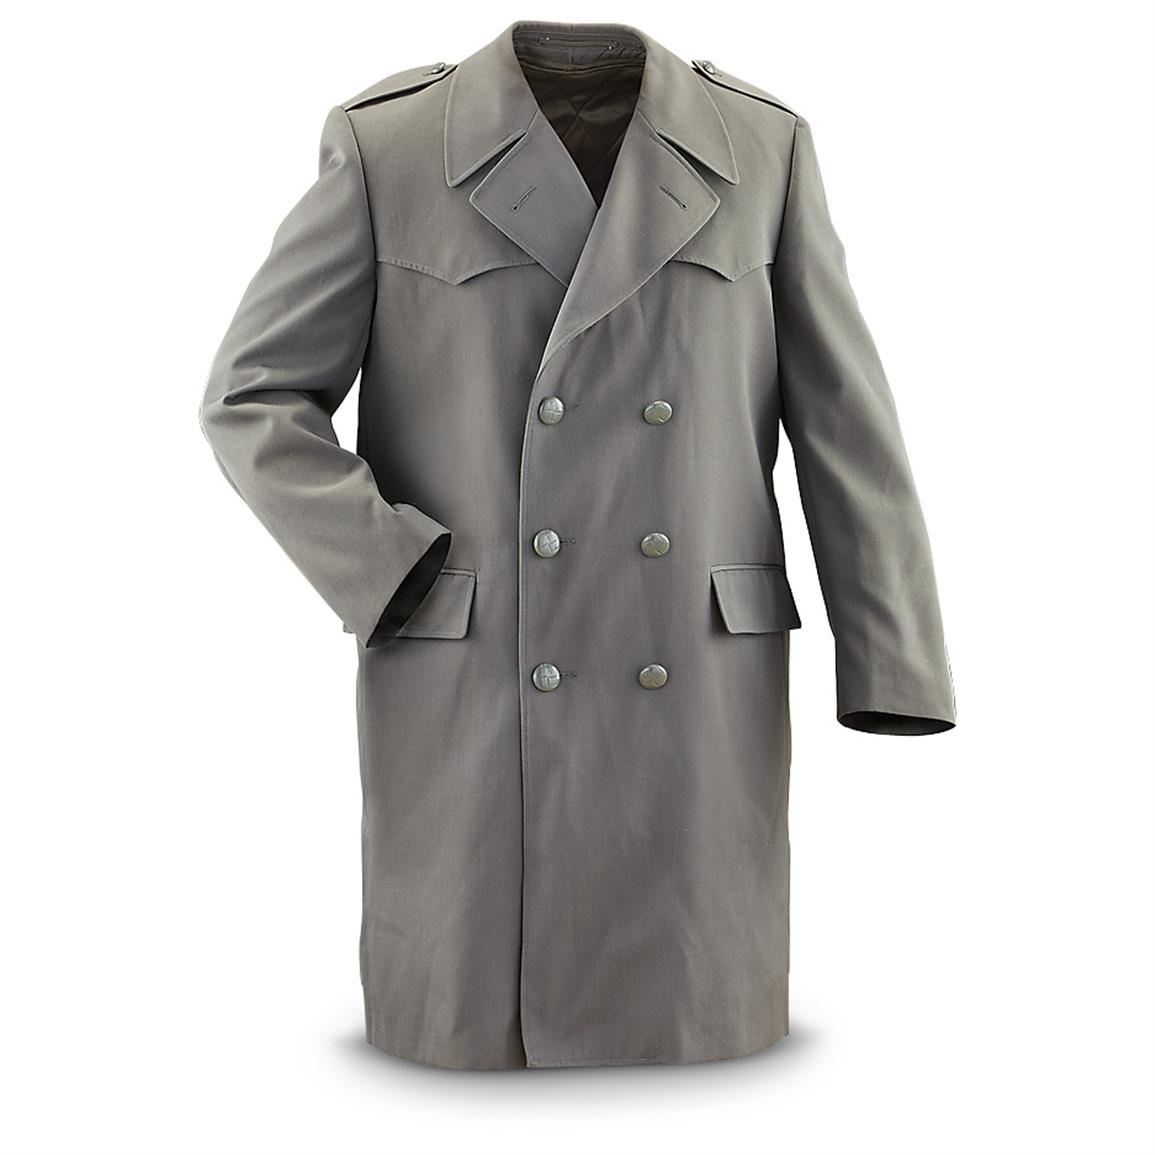 Used Italian Military Trench Coat with Liner, Gray